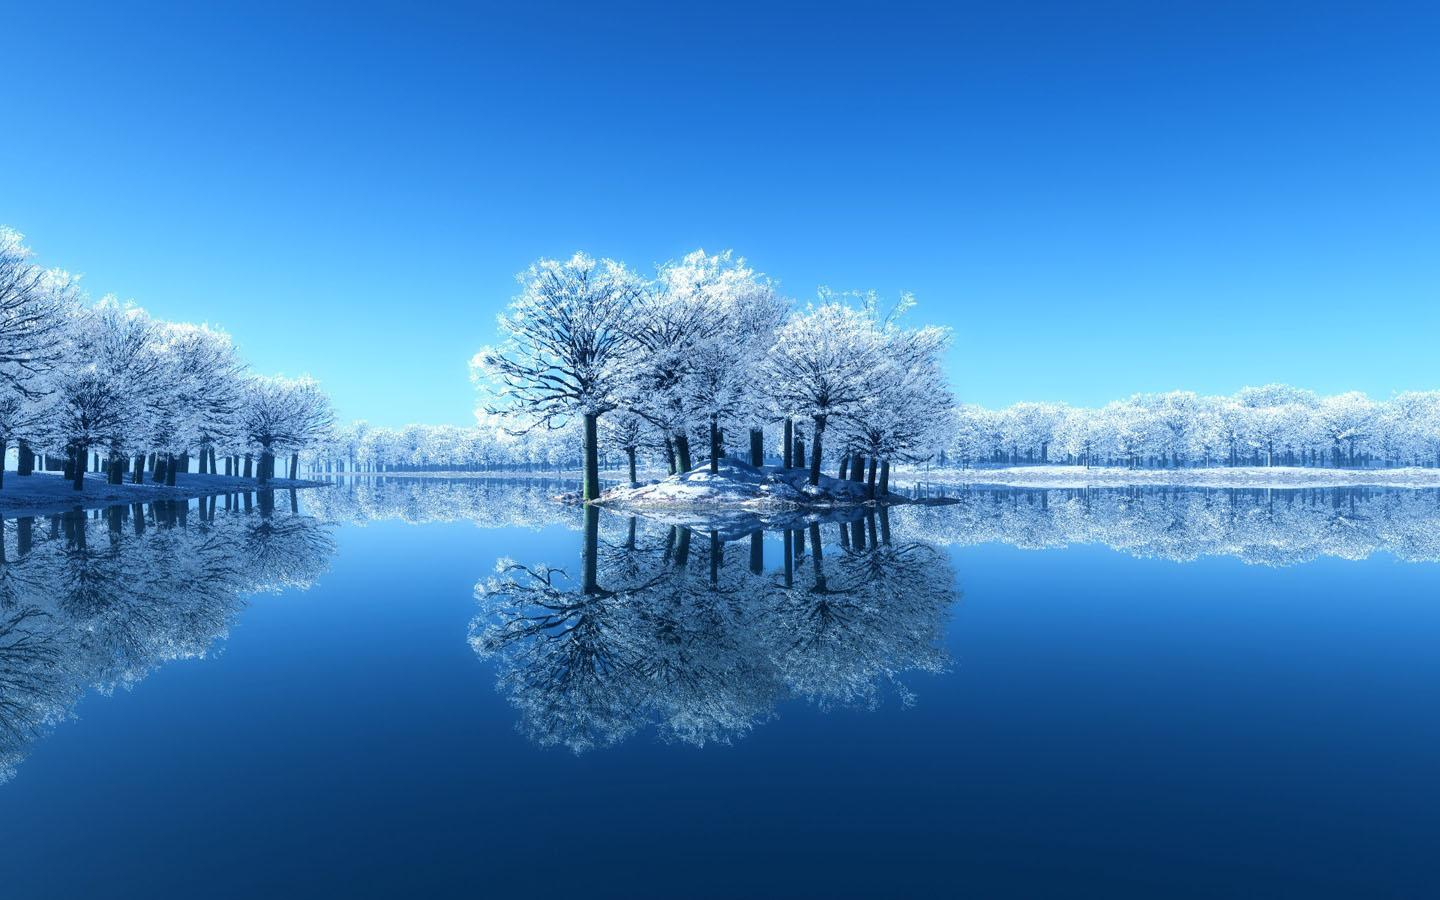 Snow Wallpaper - Android Apps on Google Play